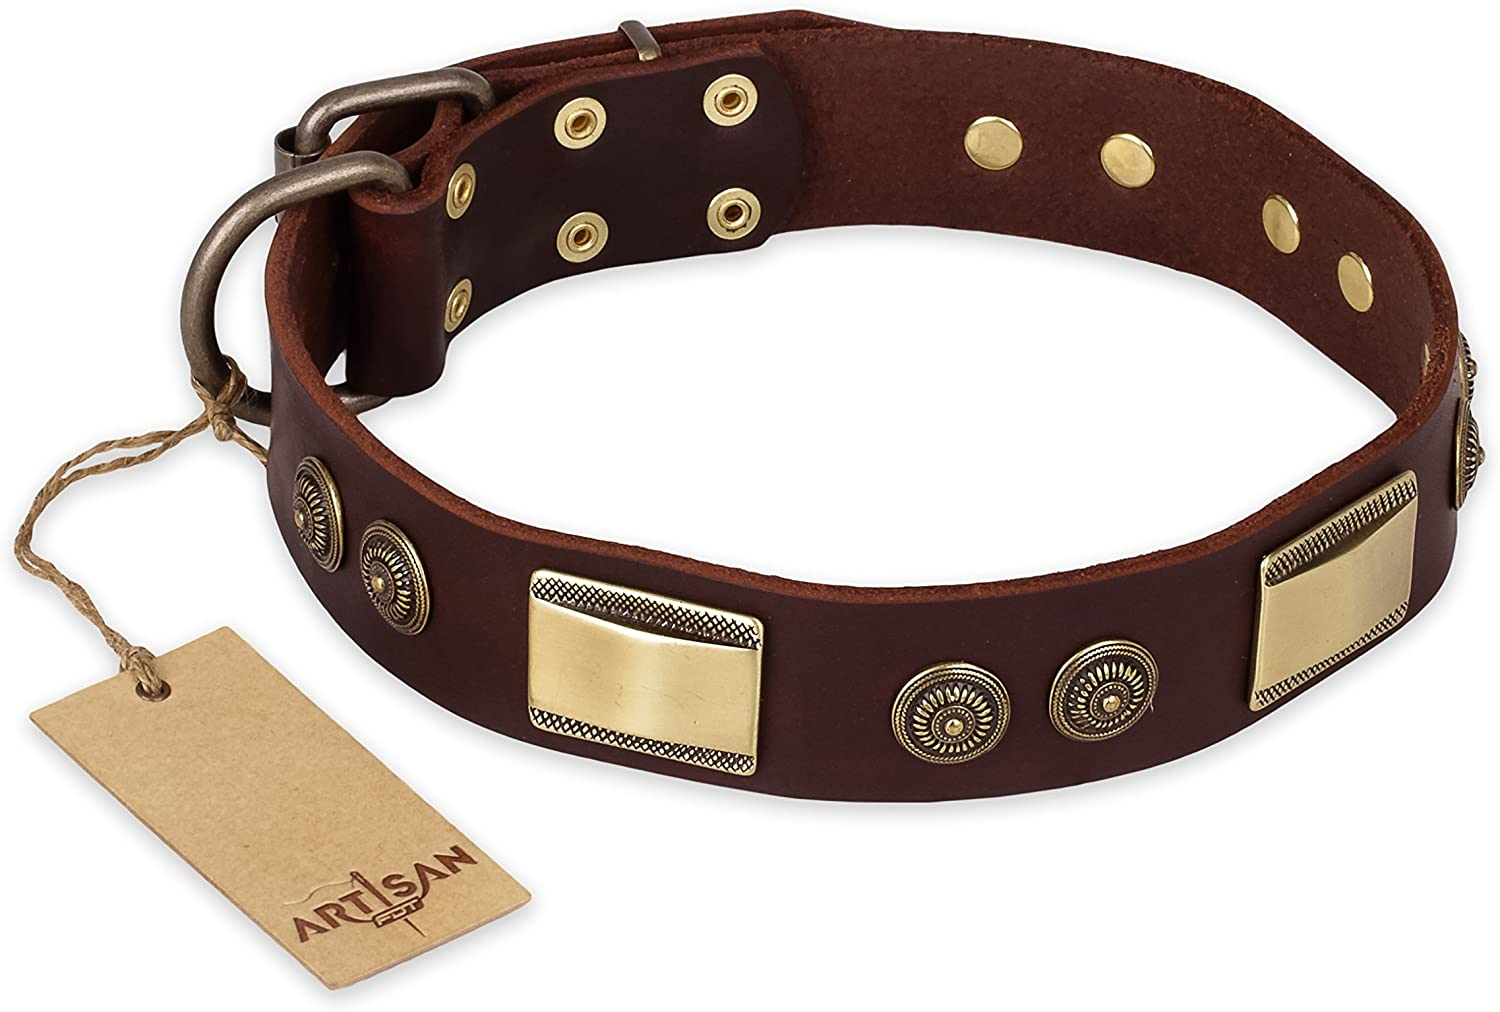 35 inch Fancy Brown Leather Dog Collar   Vintage Trimness  Brass Decor by Artisan  Exclusive Handcrafted Item  1 1 2 inch (40 cm) wide  Gift Box Included